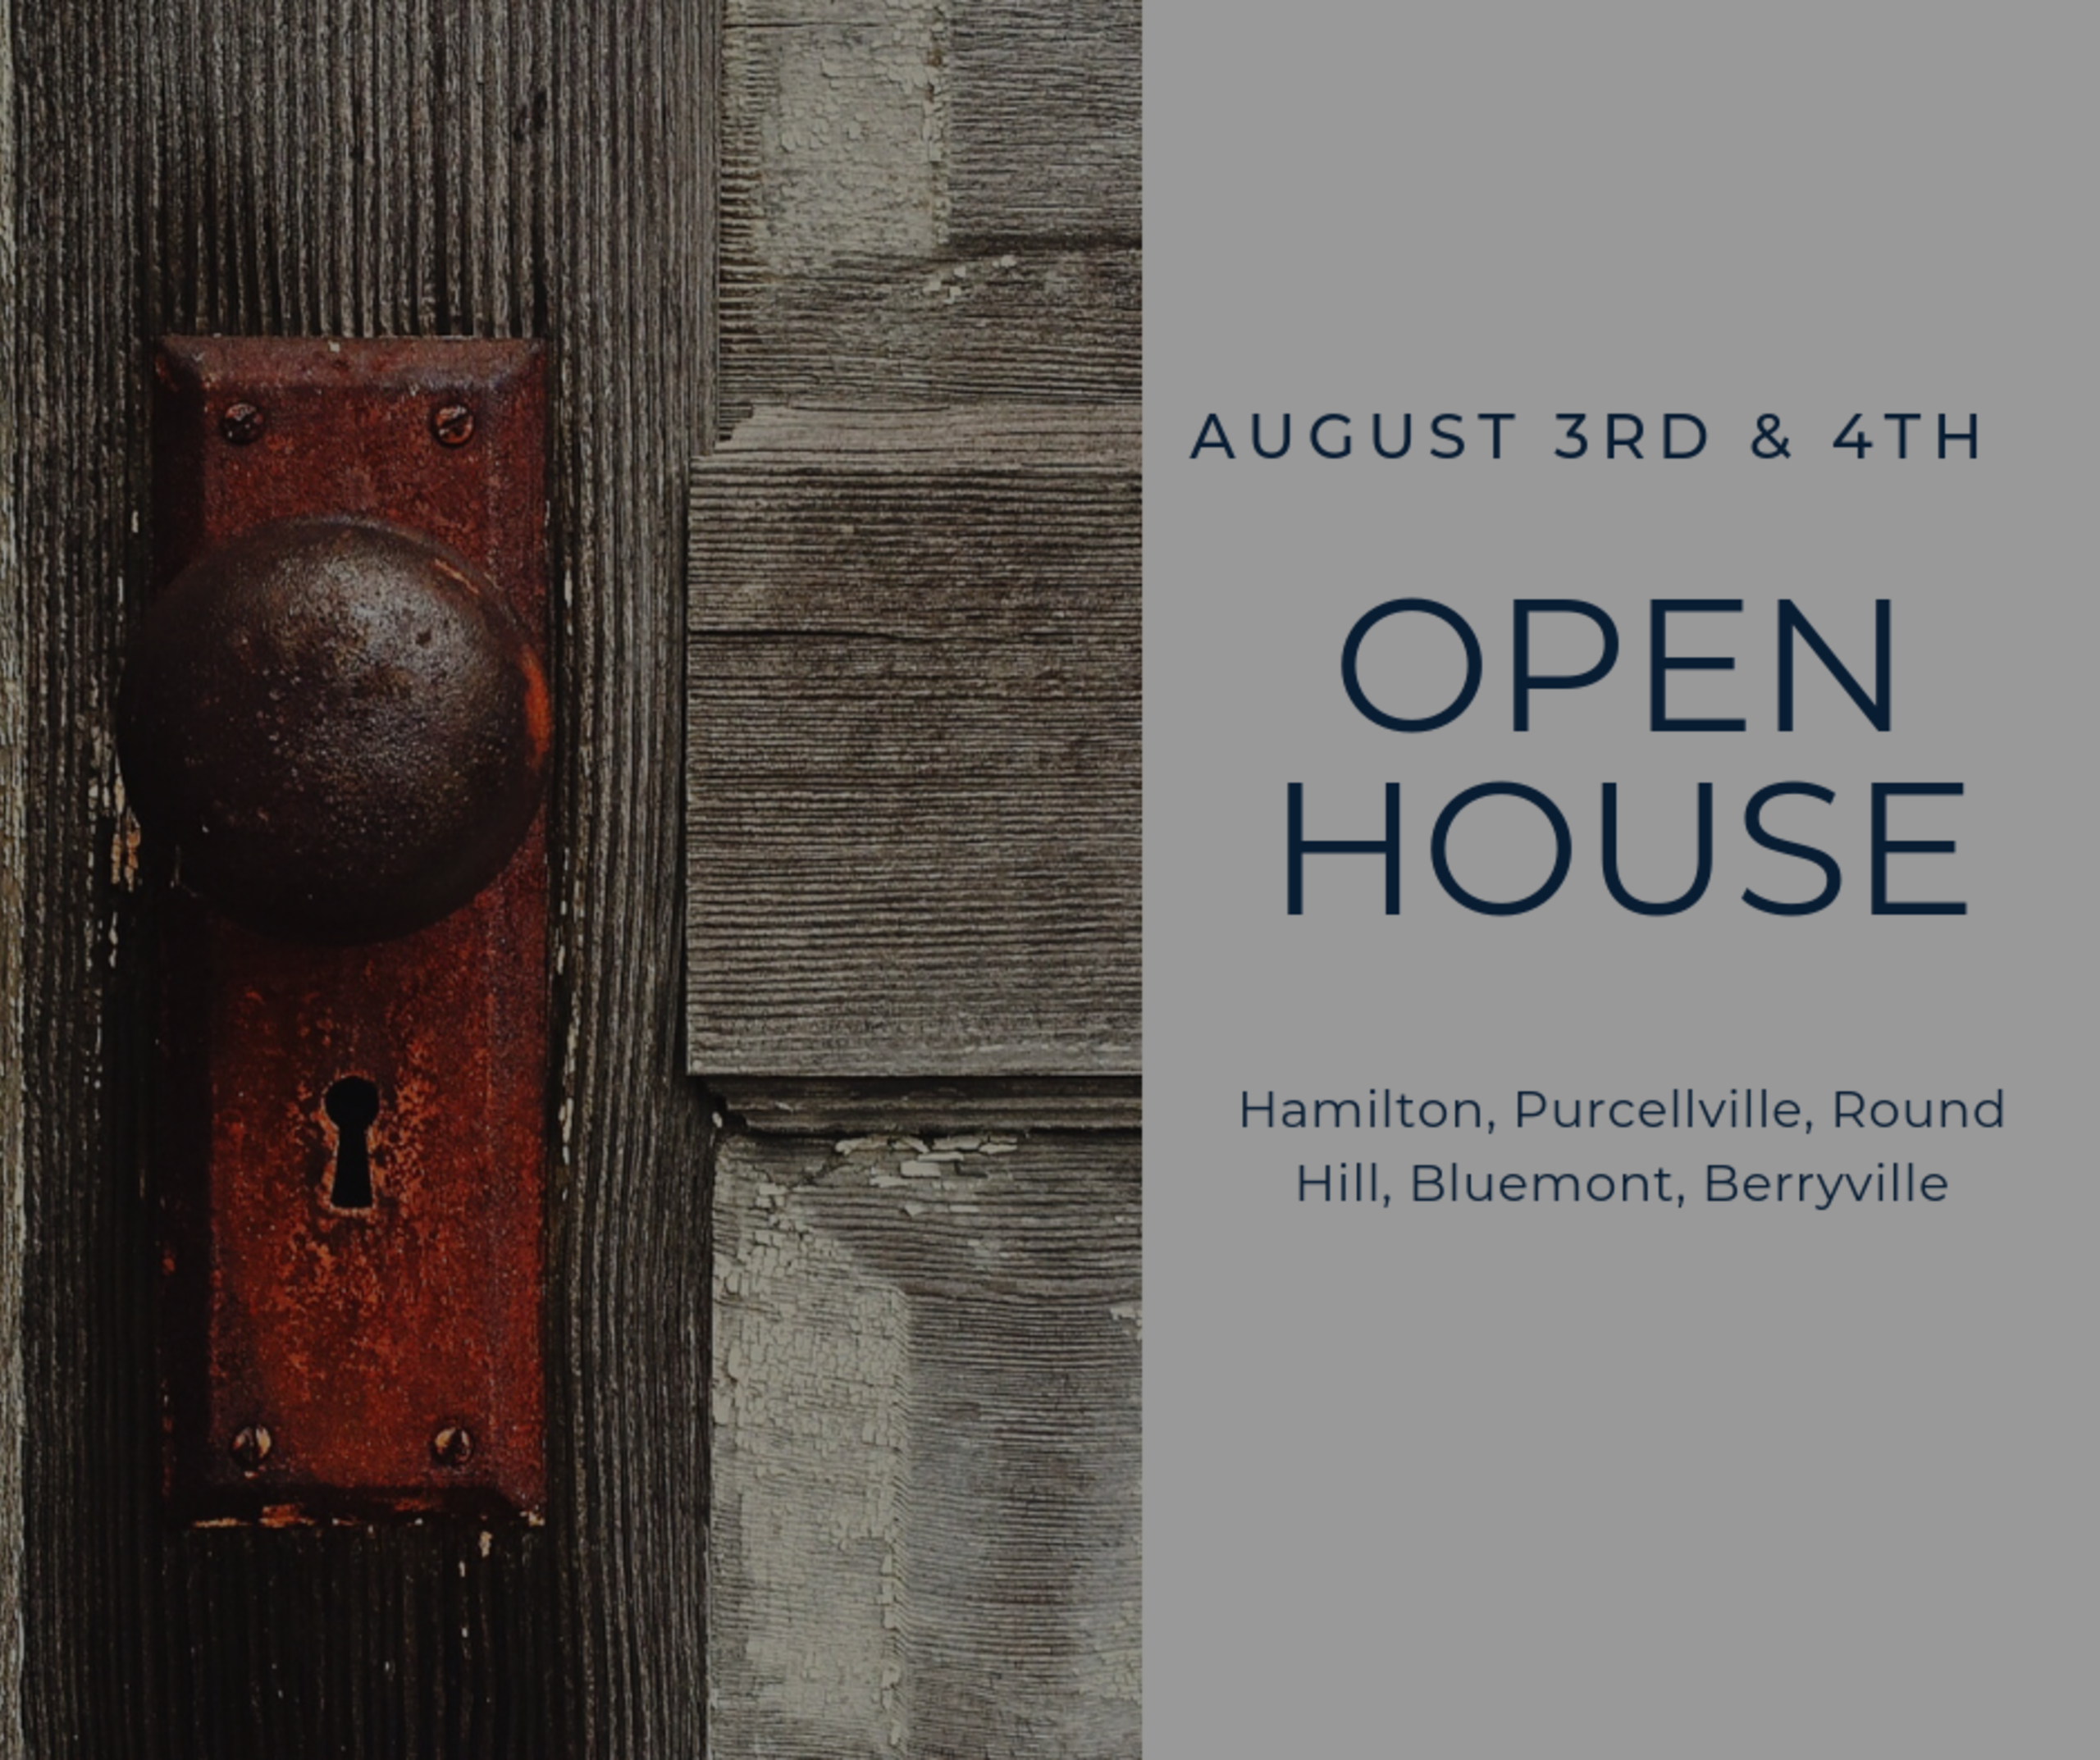 Open House List 8/3/19 – 8/4/19